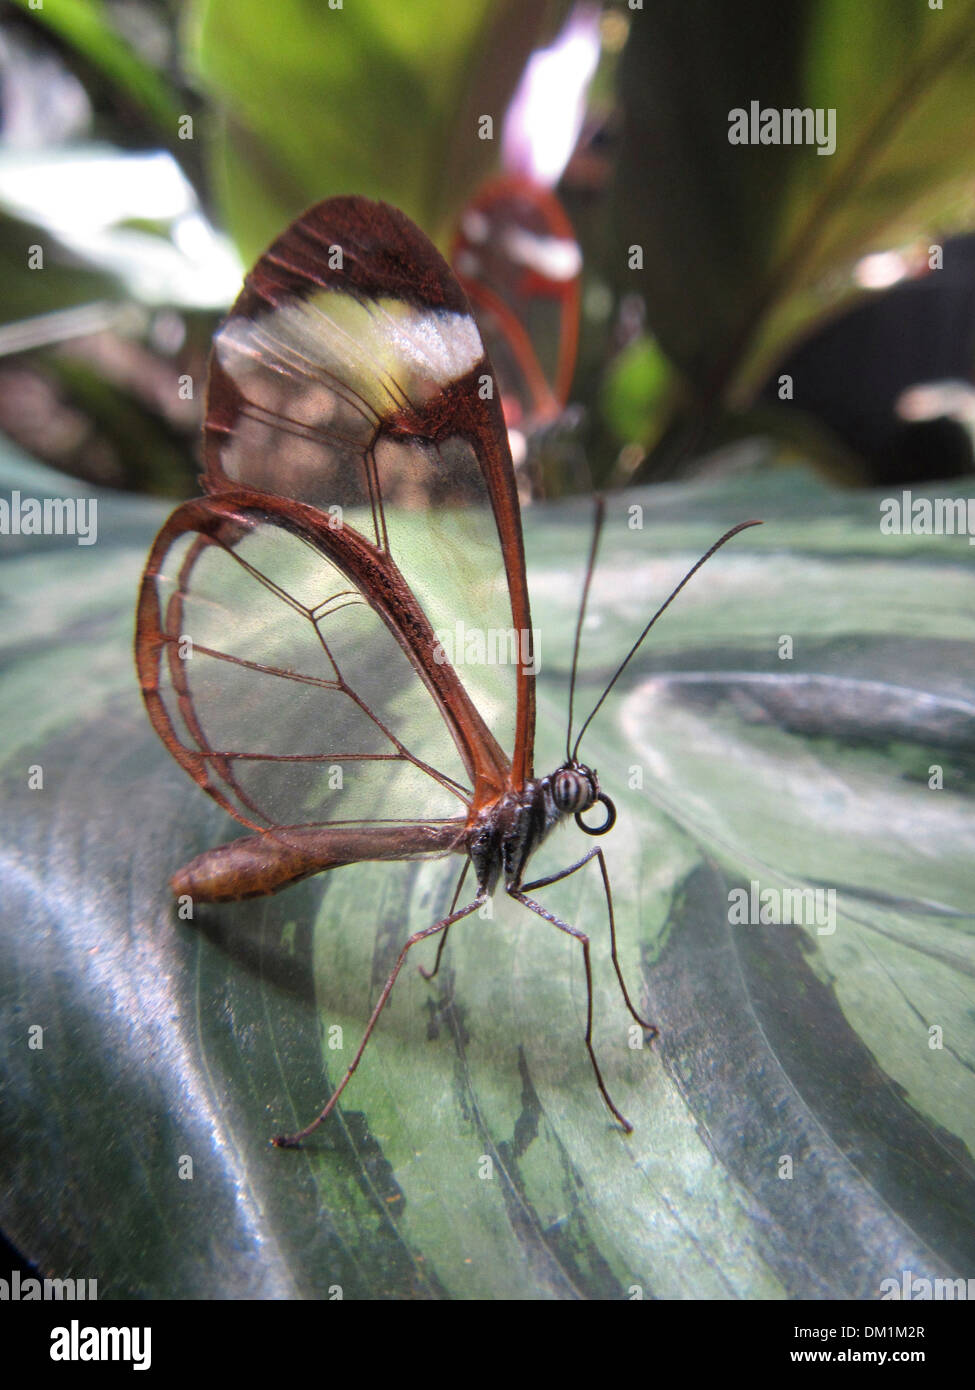 Glasswing Butterfly. The Glasswinged butterfly is a brush-footed butterfly, and is a member of the subfamily Danainae. - Stock Image